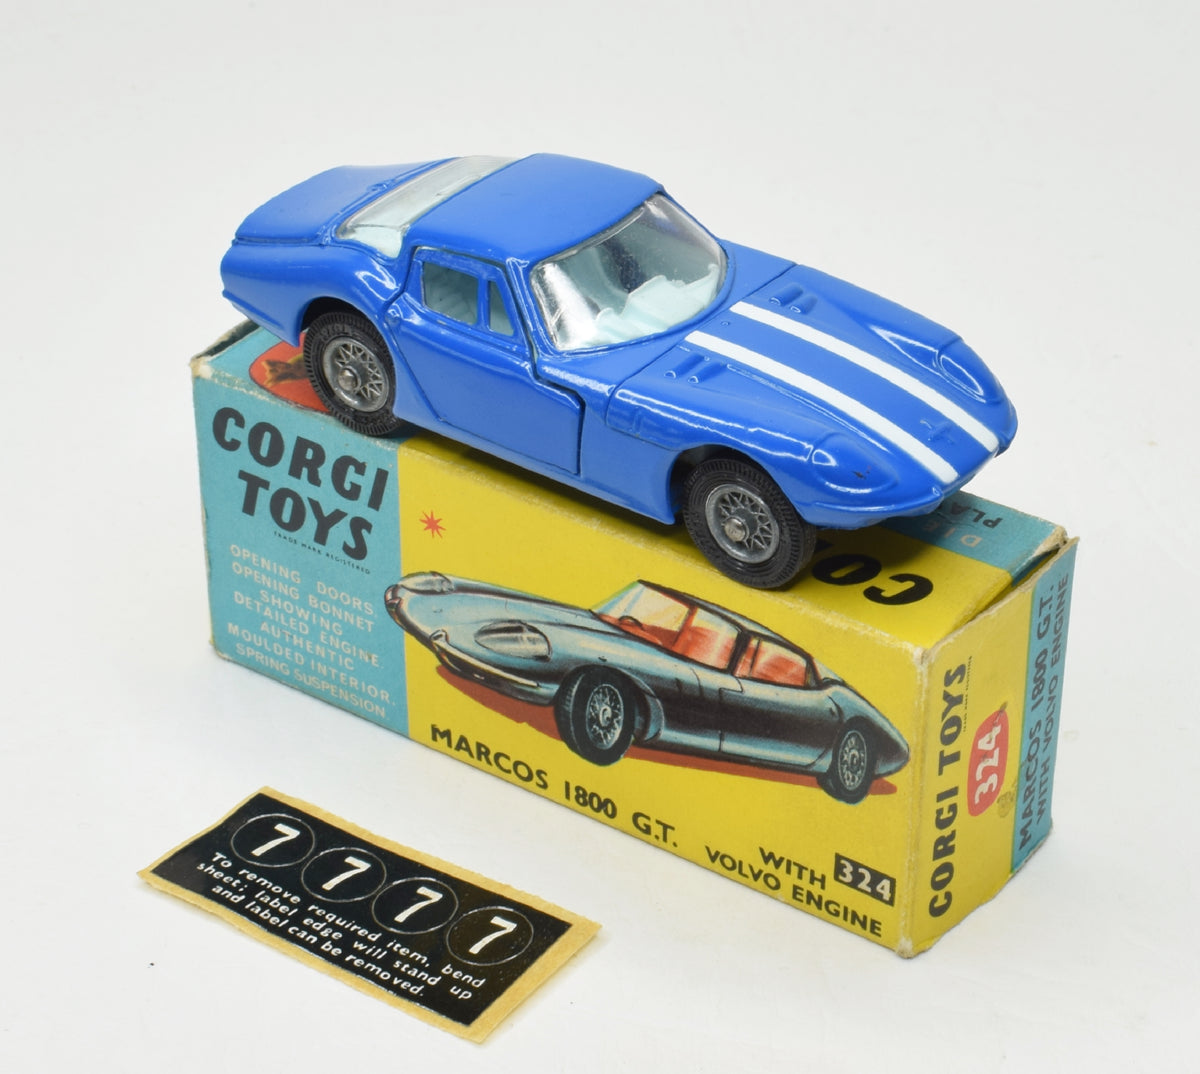 Corgi toys 324 Marcos 1800 Very Near Mint/Boxed 'P.C.R' Collection